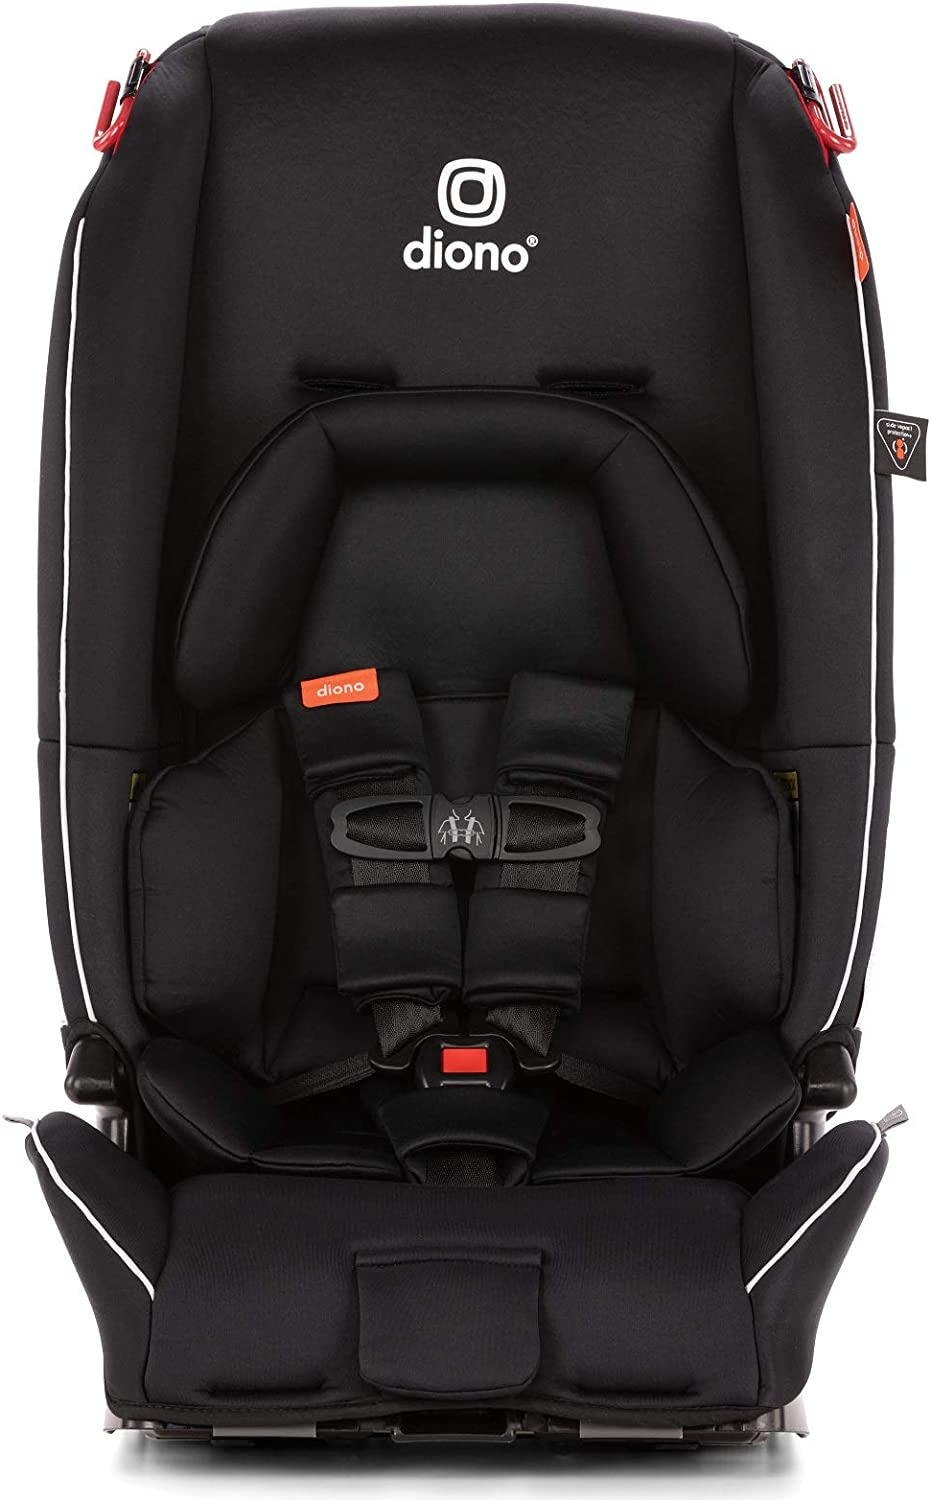 Diono Radian 3RX Latch All-in-One Convertible Car Seat Blue Sky